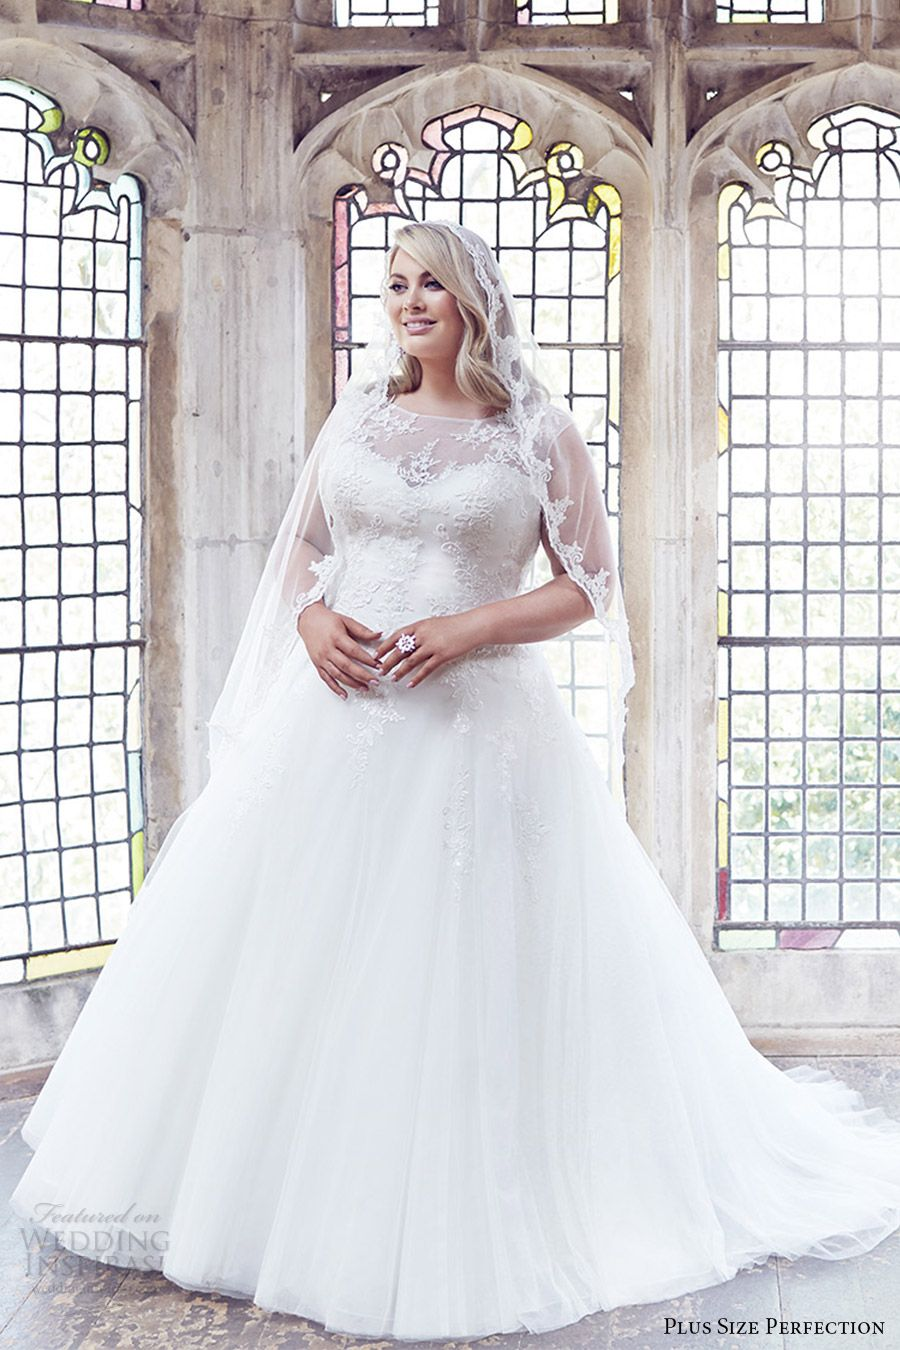 Plus size perfection wedding dresses u ucitus a love storyud campaign